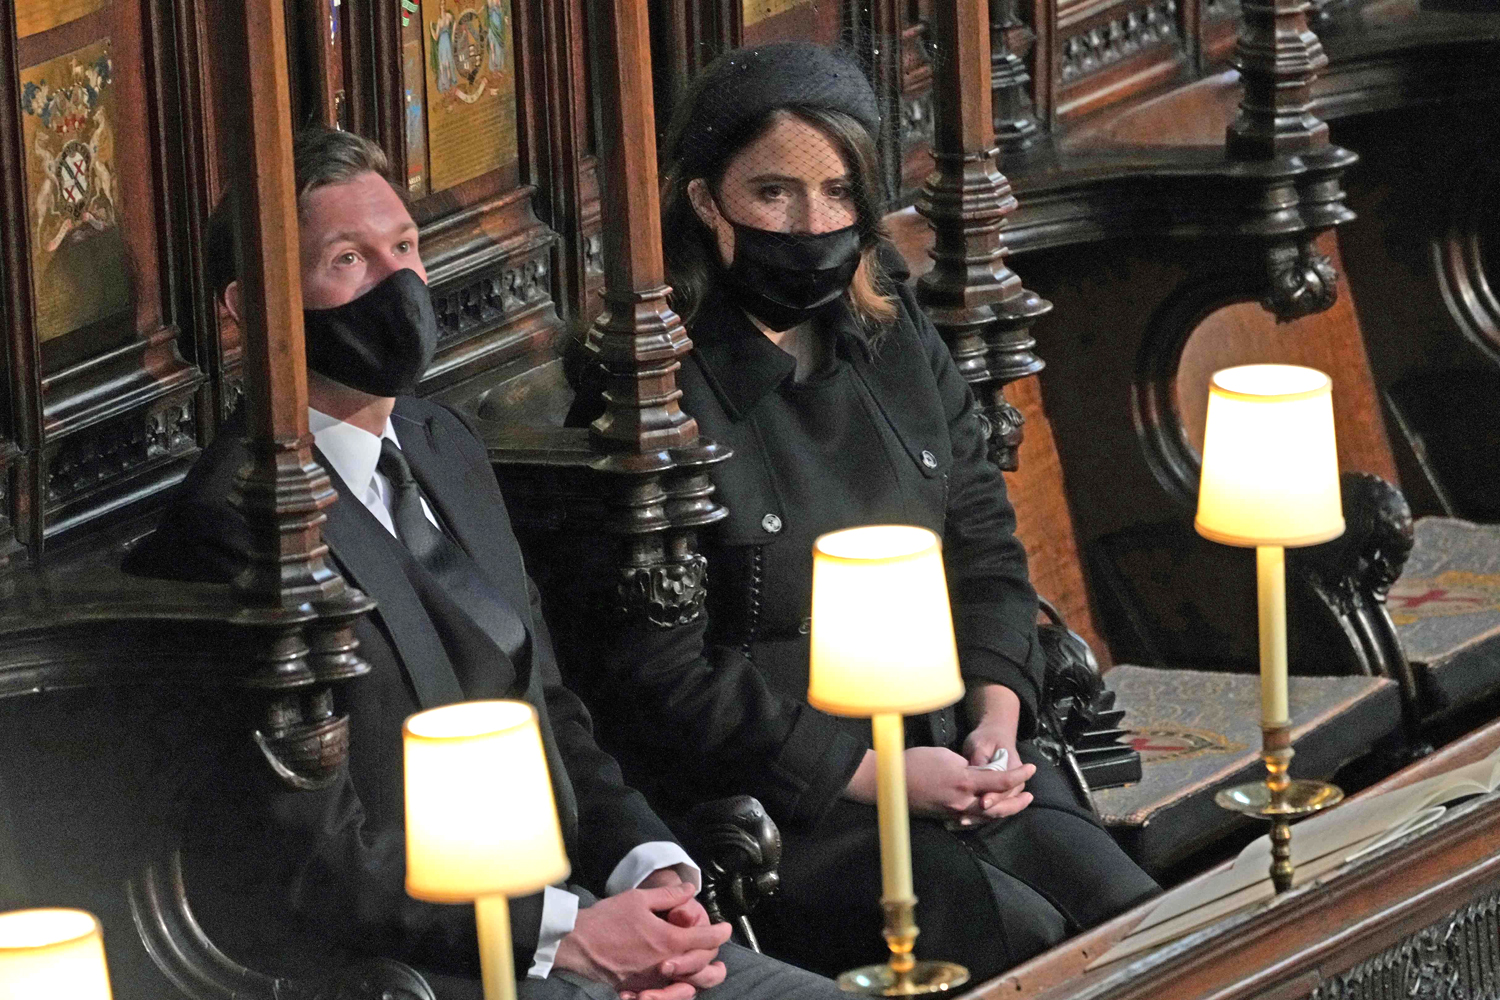 Britain's Princess Eugenie of York (R) and her husband Jack Brooksbank attend the funeral of Britain's Prince Philip, Duke of Edinburgh